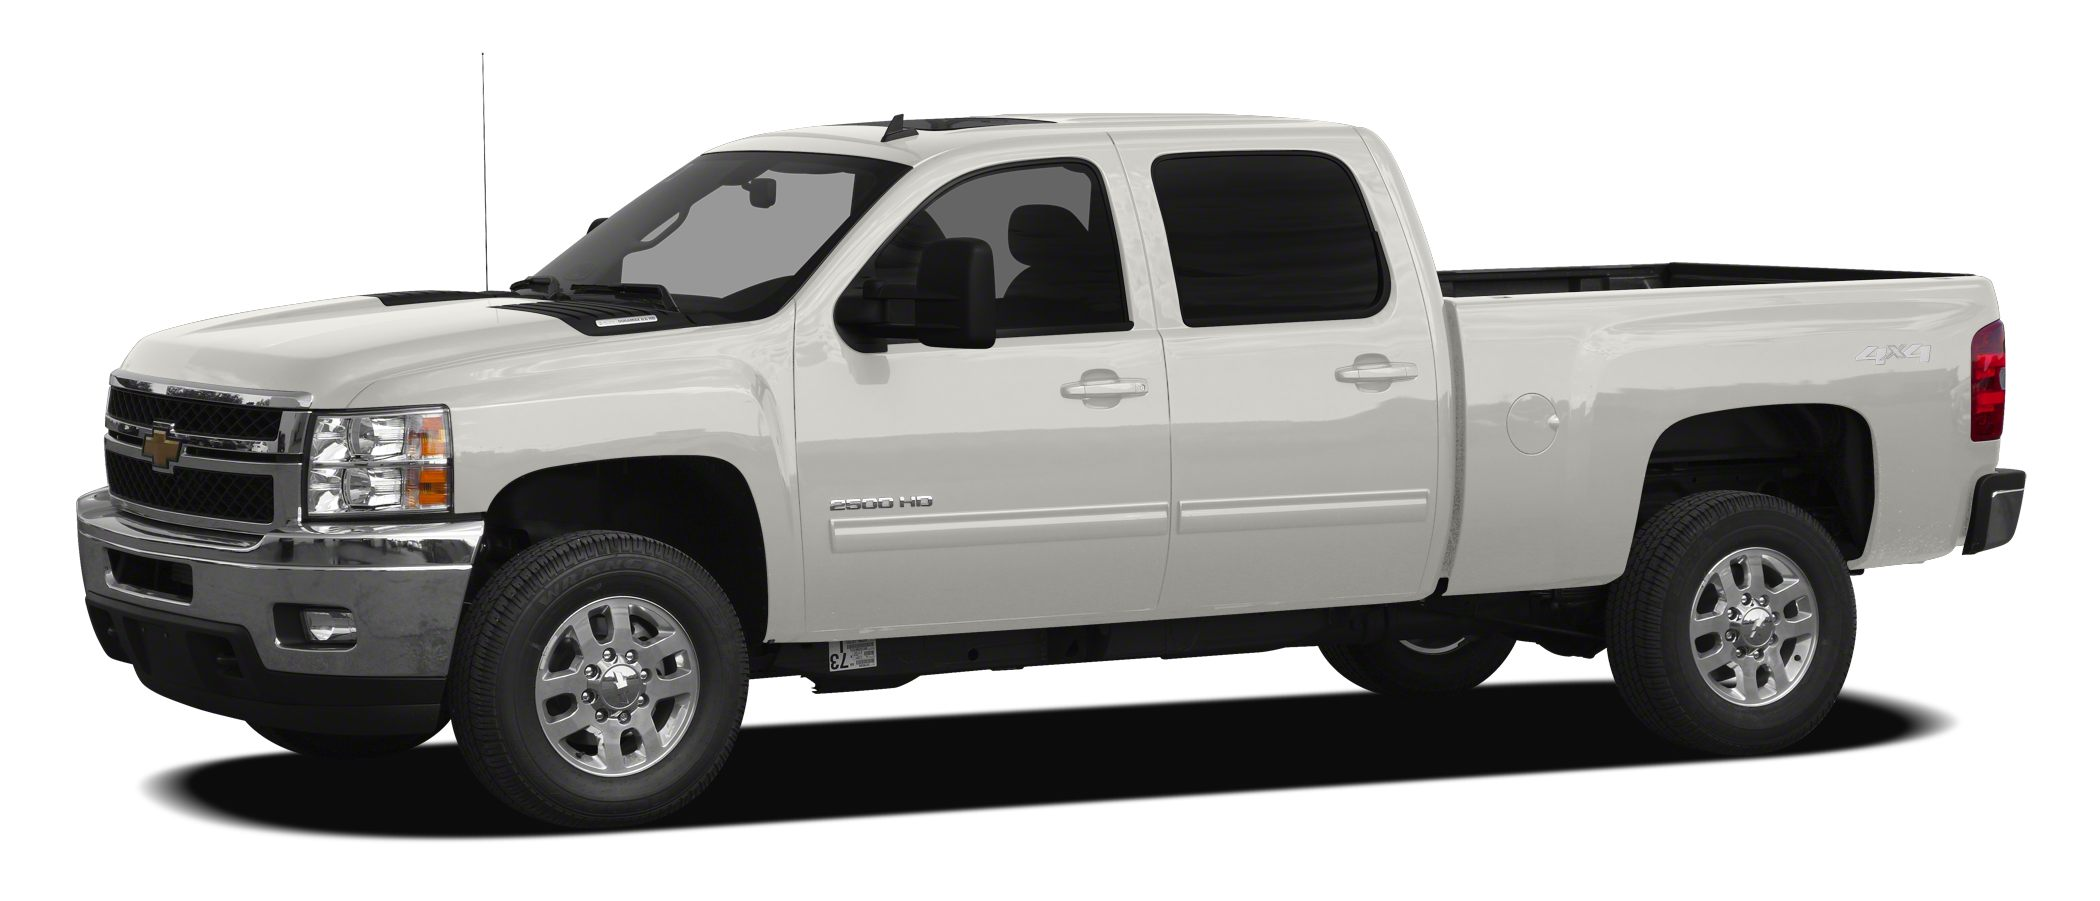 2012 Chevrolet Silverado 2500HD WT Win a bargain on this 2012 Chevrolet Silverado 2500HD Work Truc